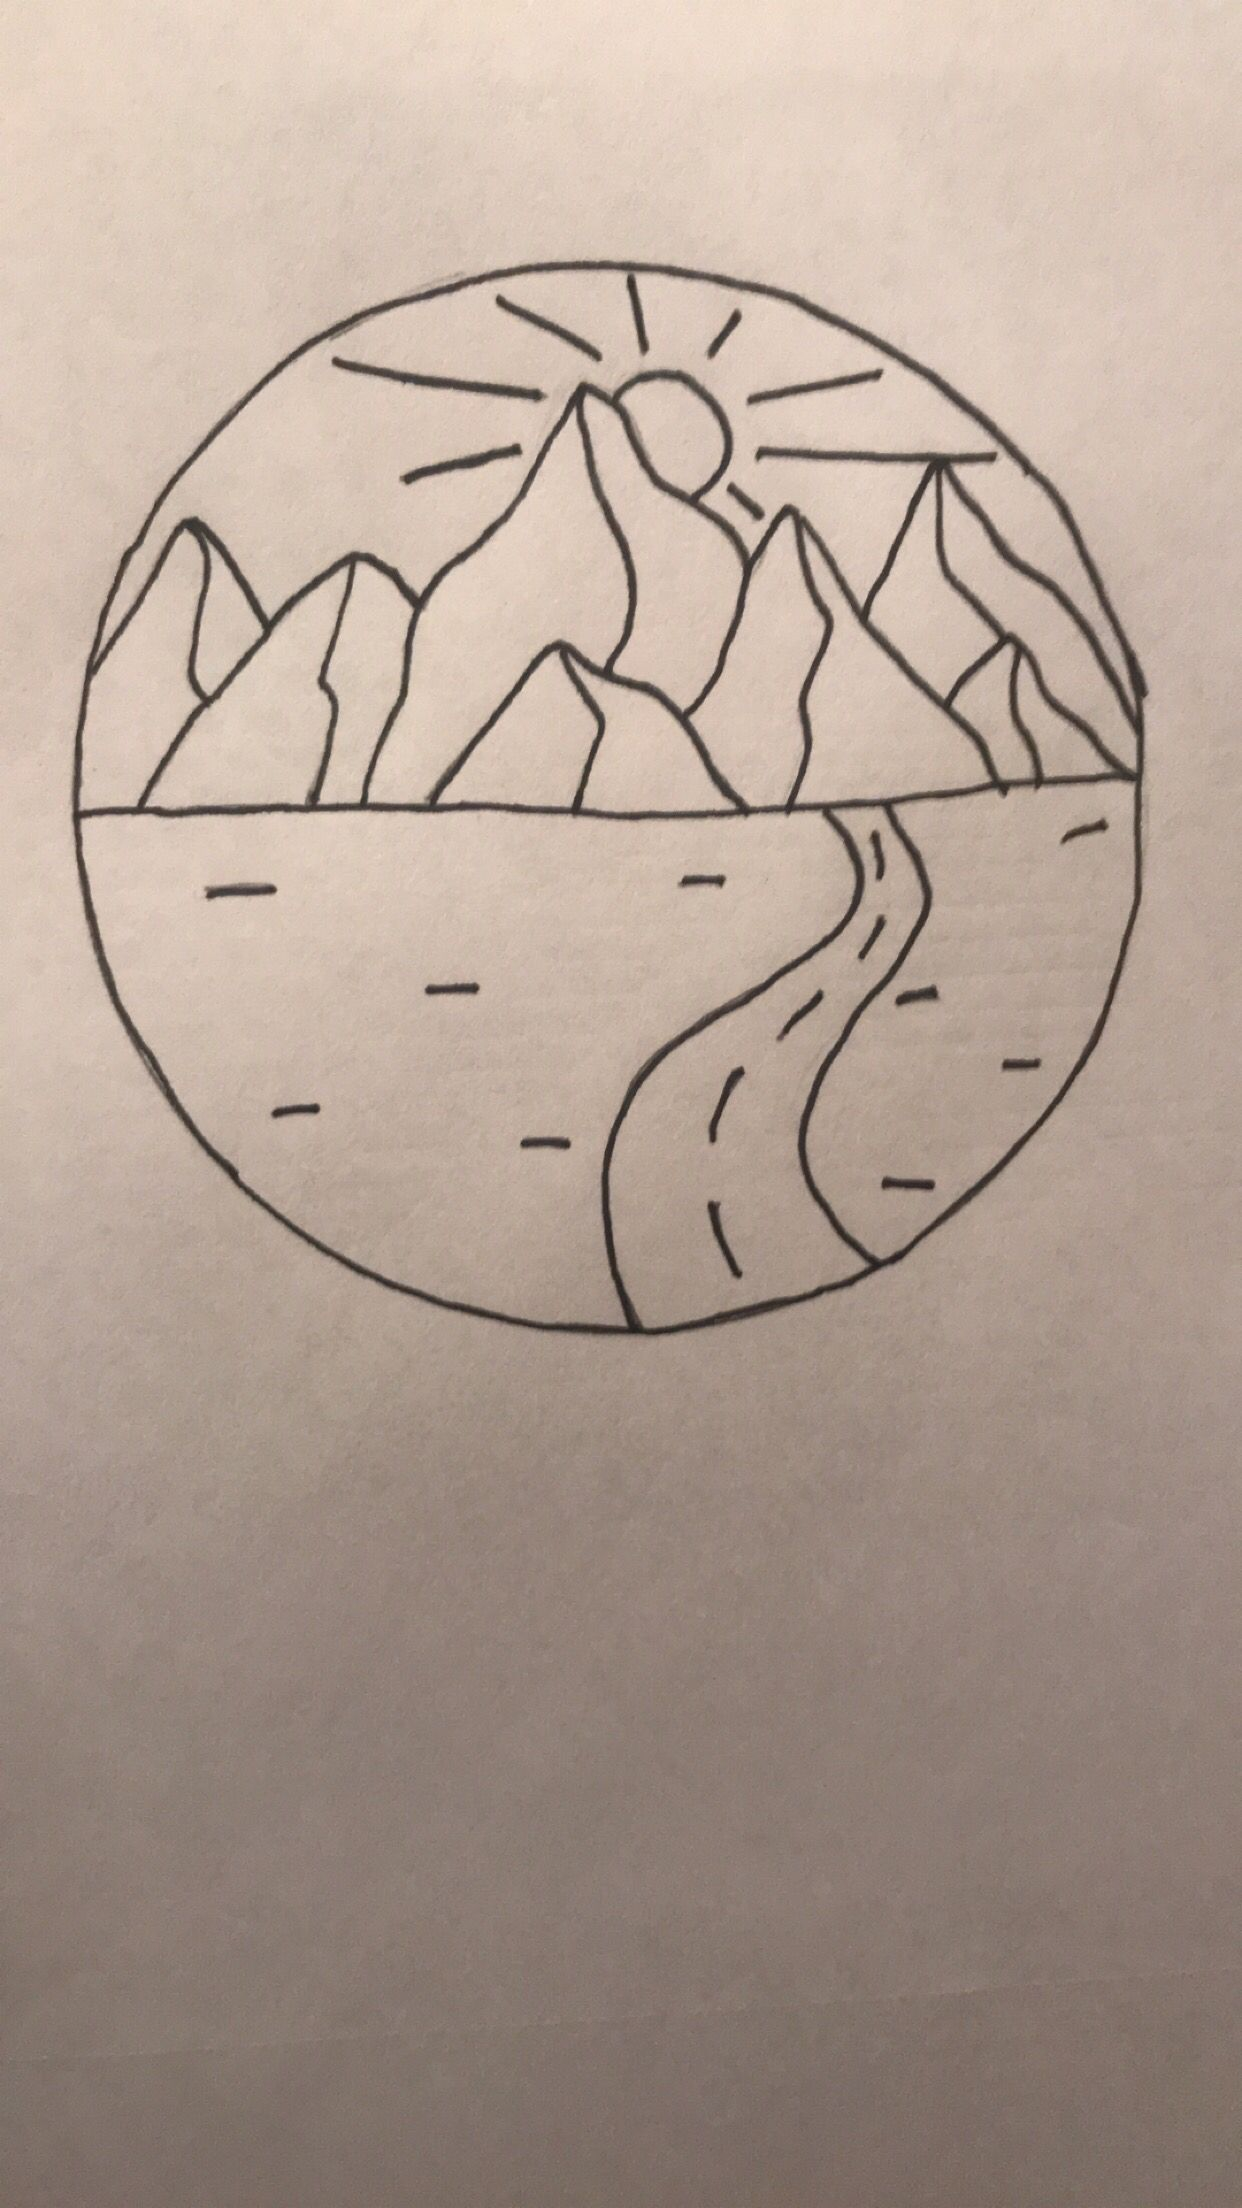 Simple Mountain And Nature Pencil Sketch Easy Fast Art Tattoo